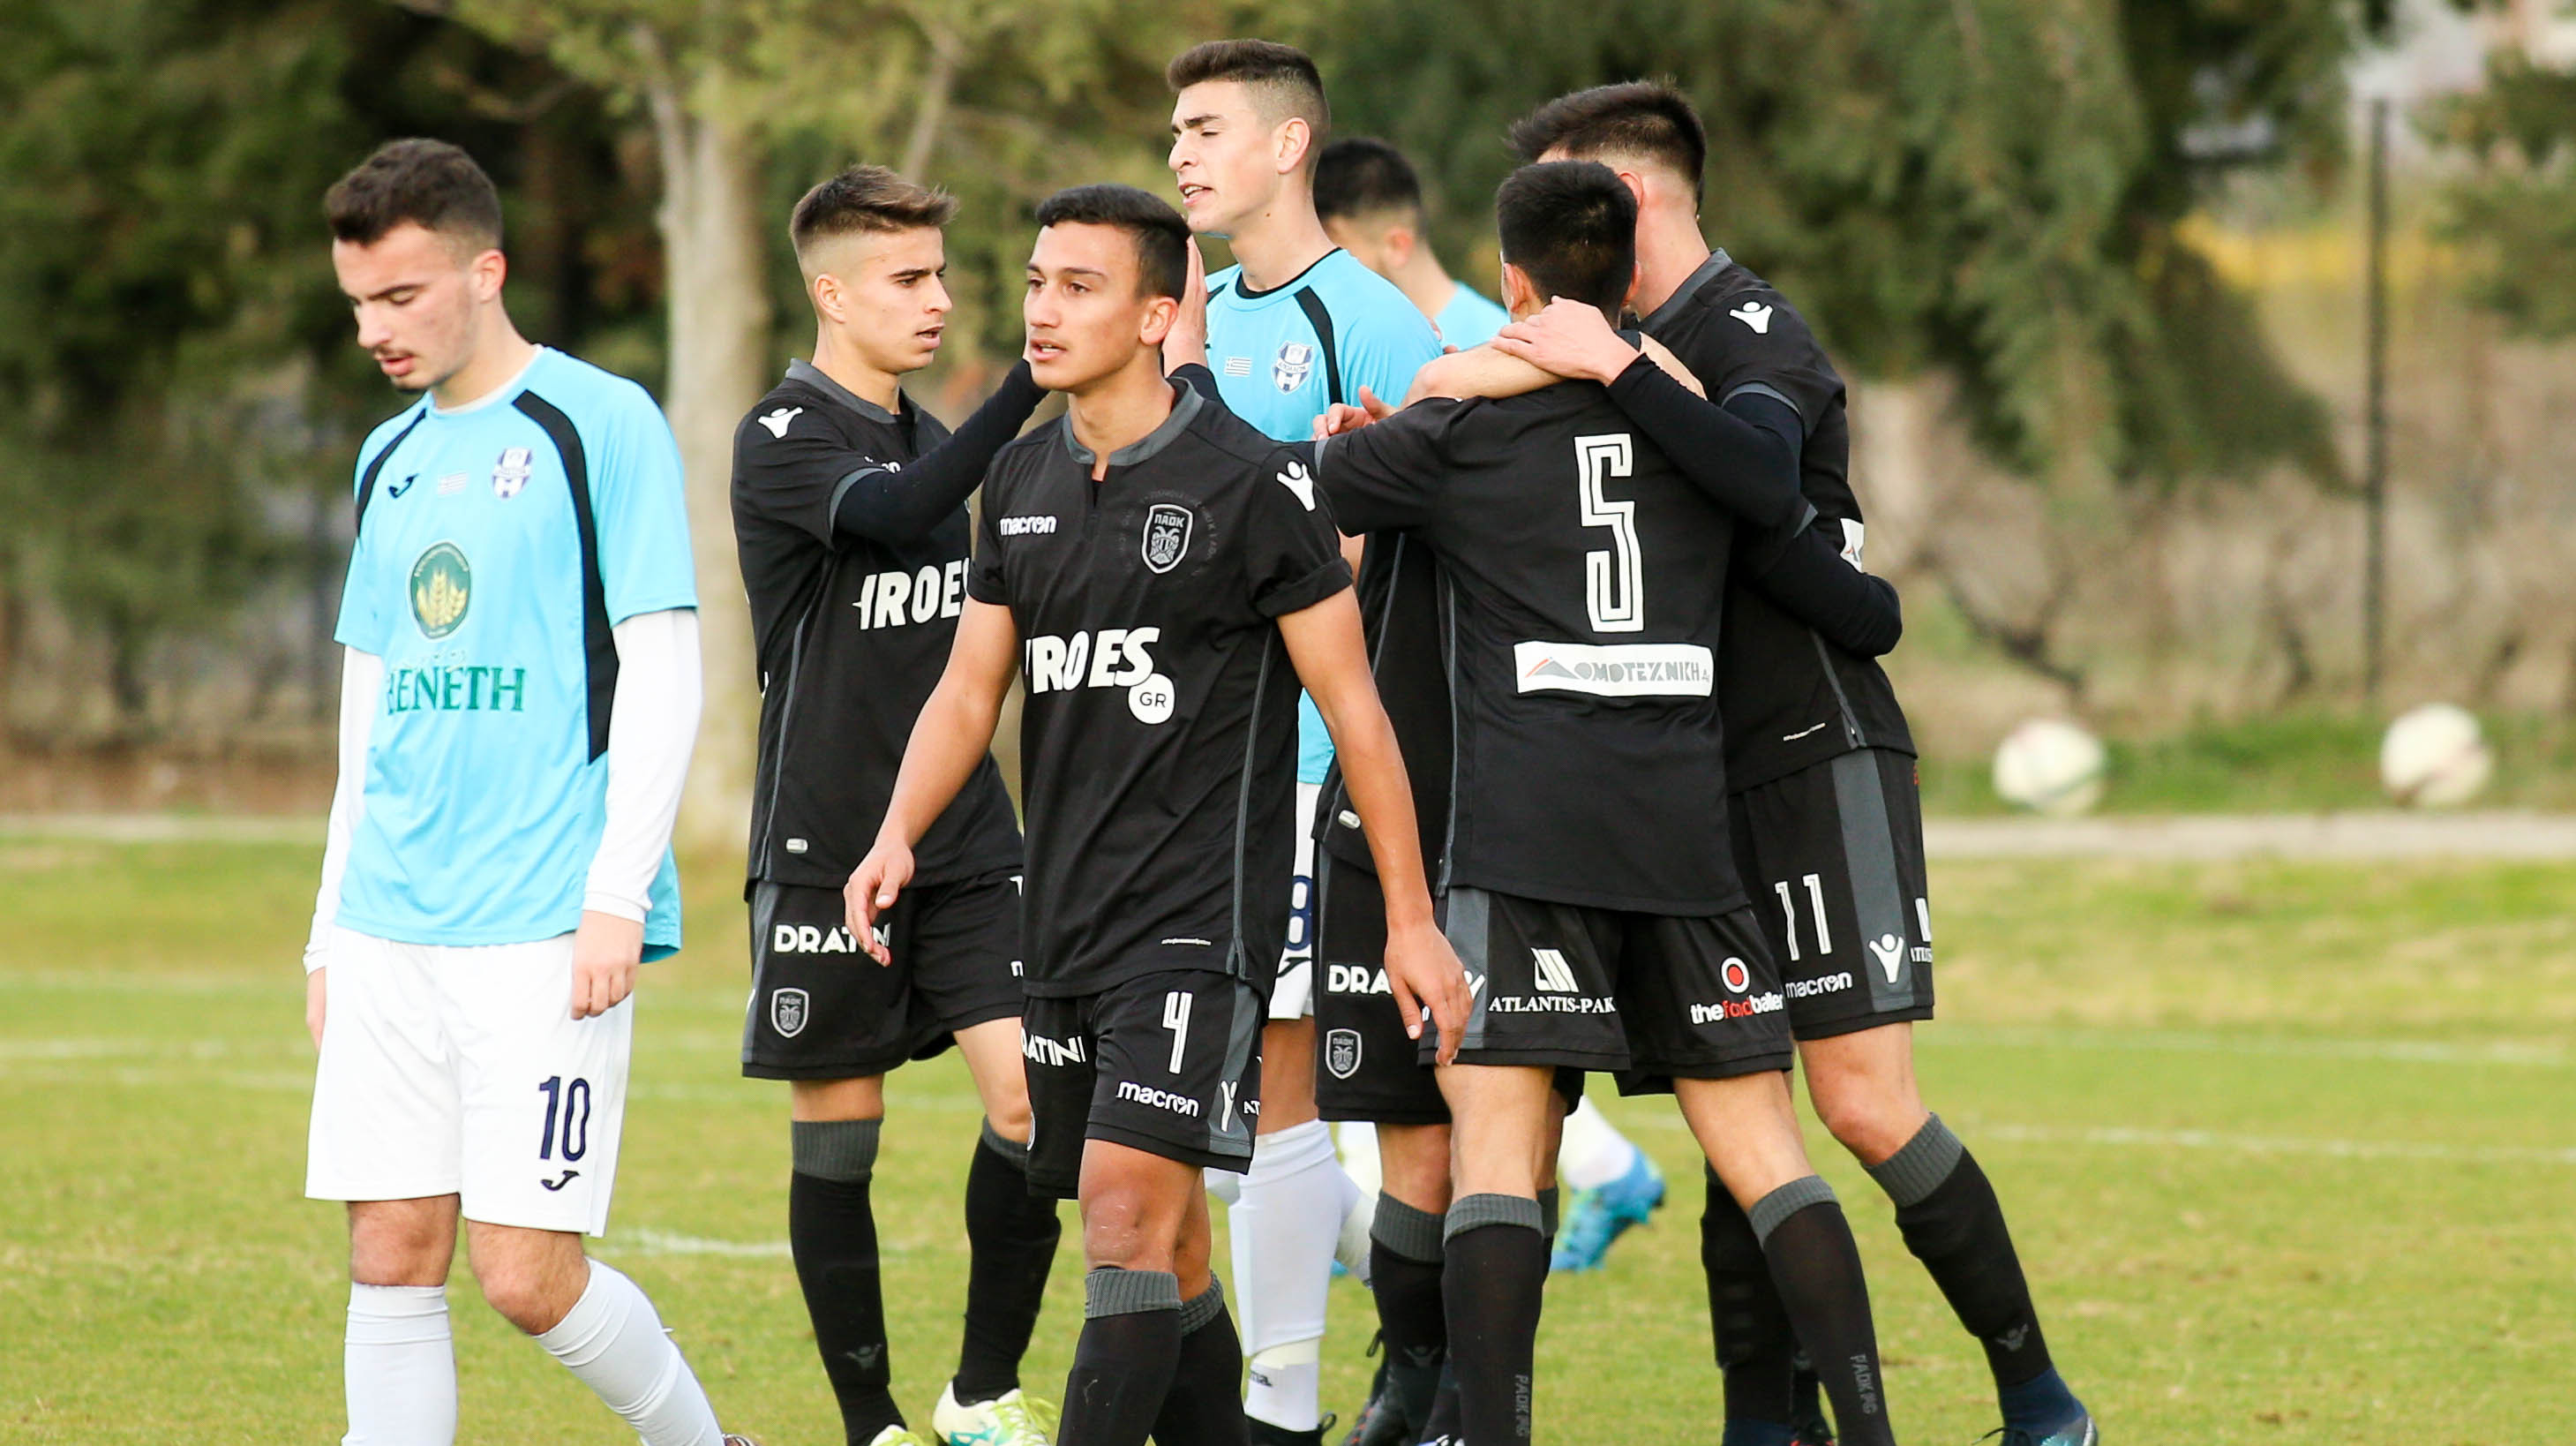 PAOK U20 – Apollon Smyrni U20: Highlights